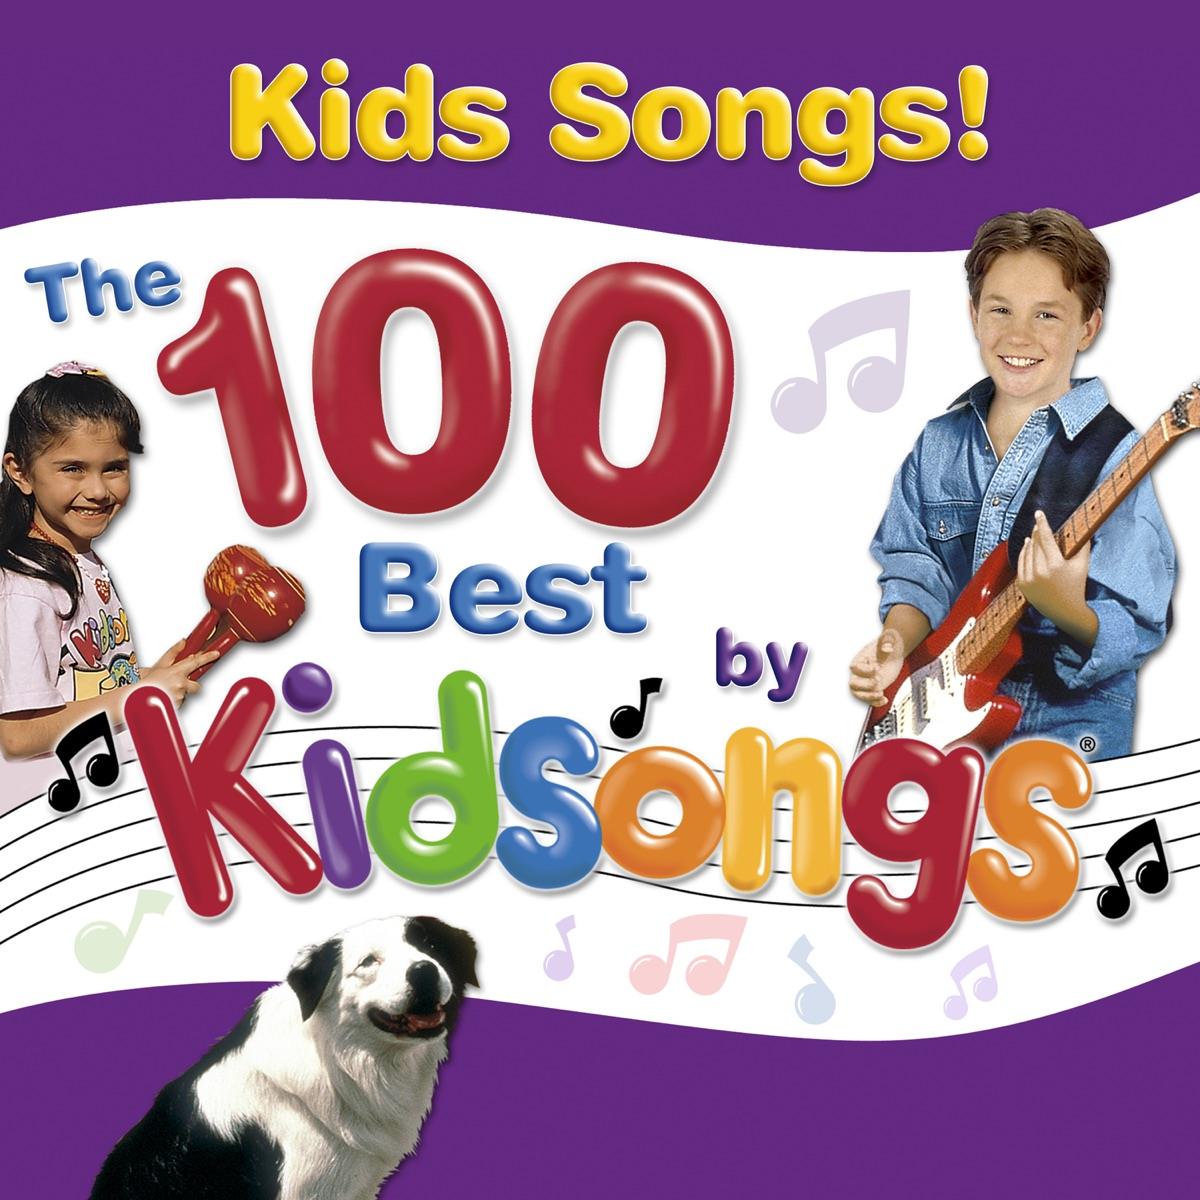 The 100 Greatest Kidsongs Collection Album Cover by Kidsongs